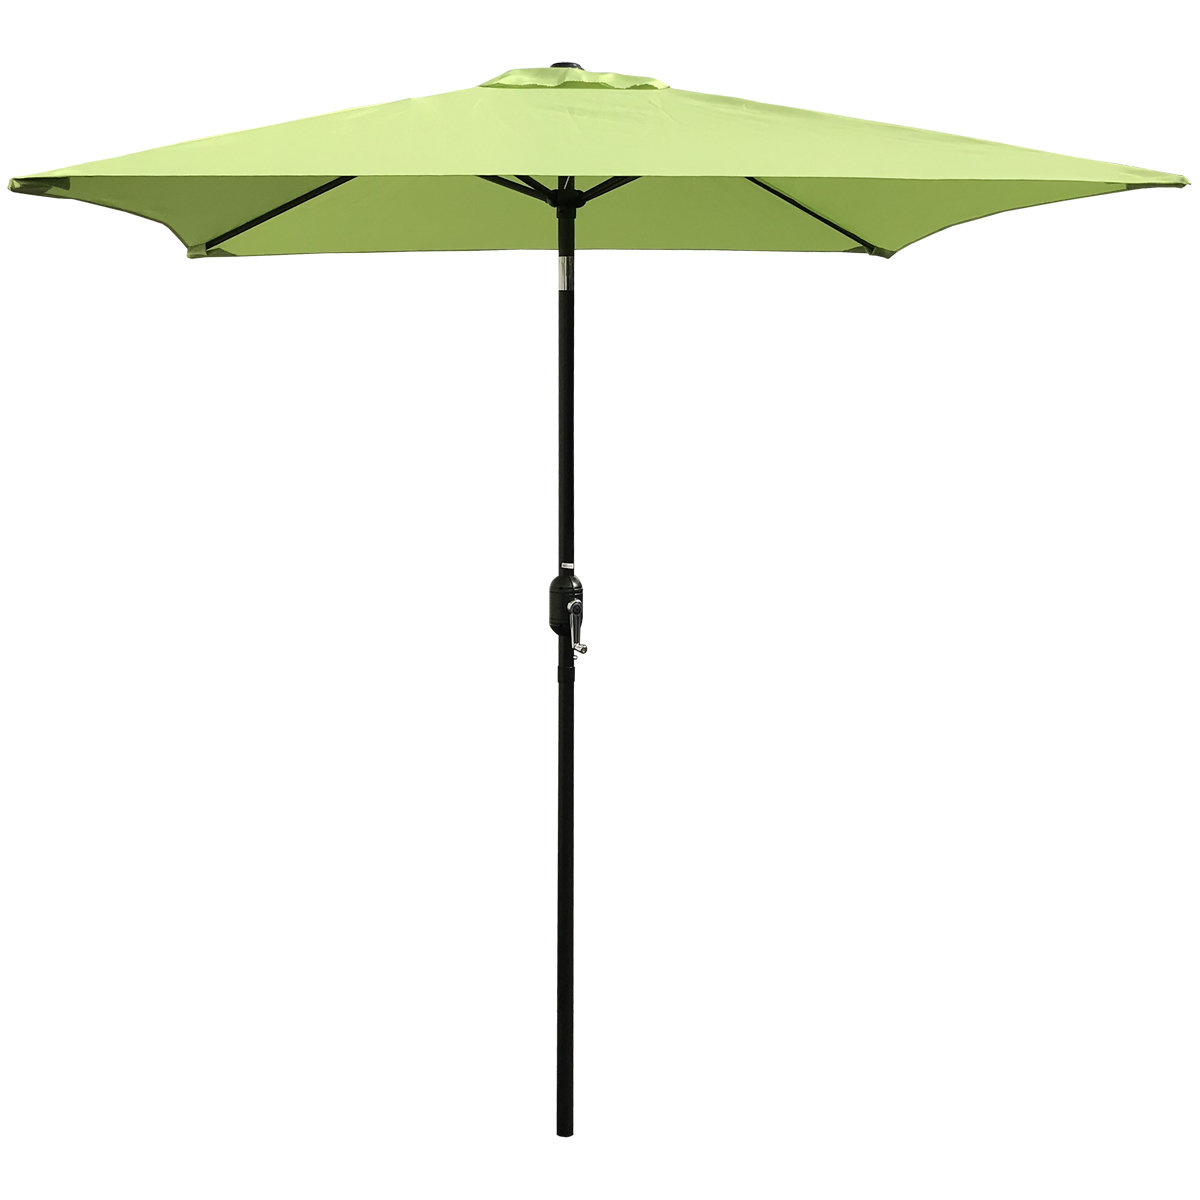 Bradford Patio 6.5' Square Market Umbrella Regarding Recent Iyanna Cantilever Umbrellas (Gallery 5 of 20)